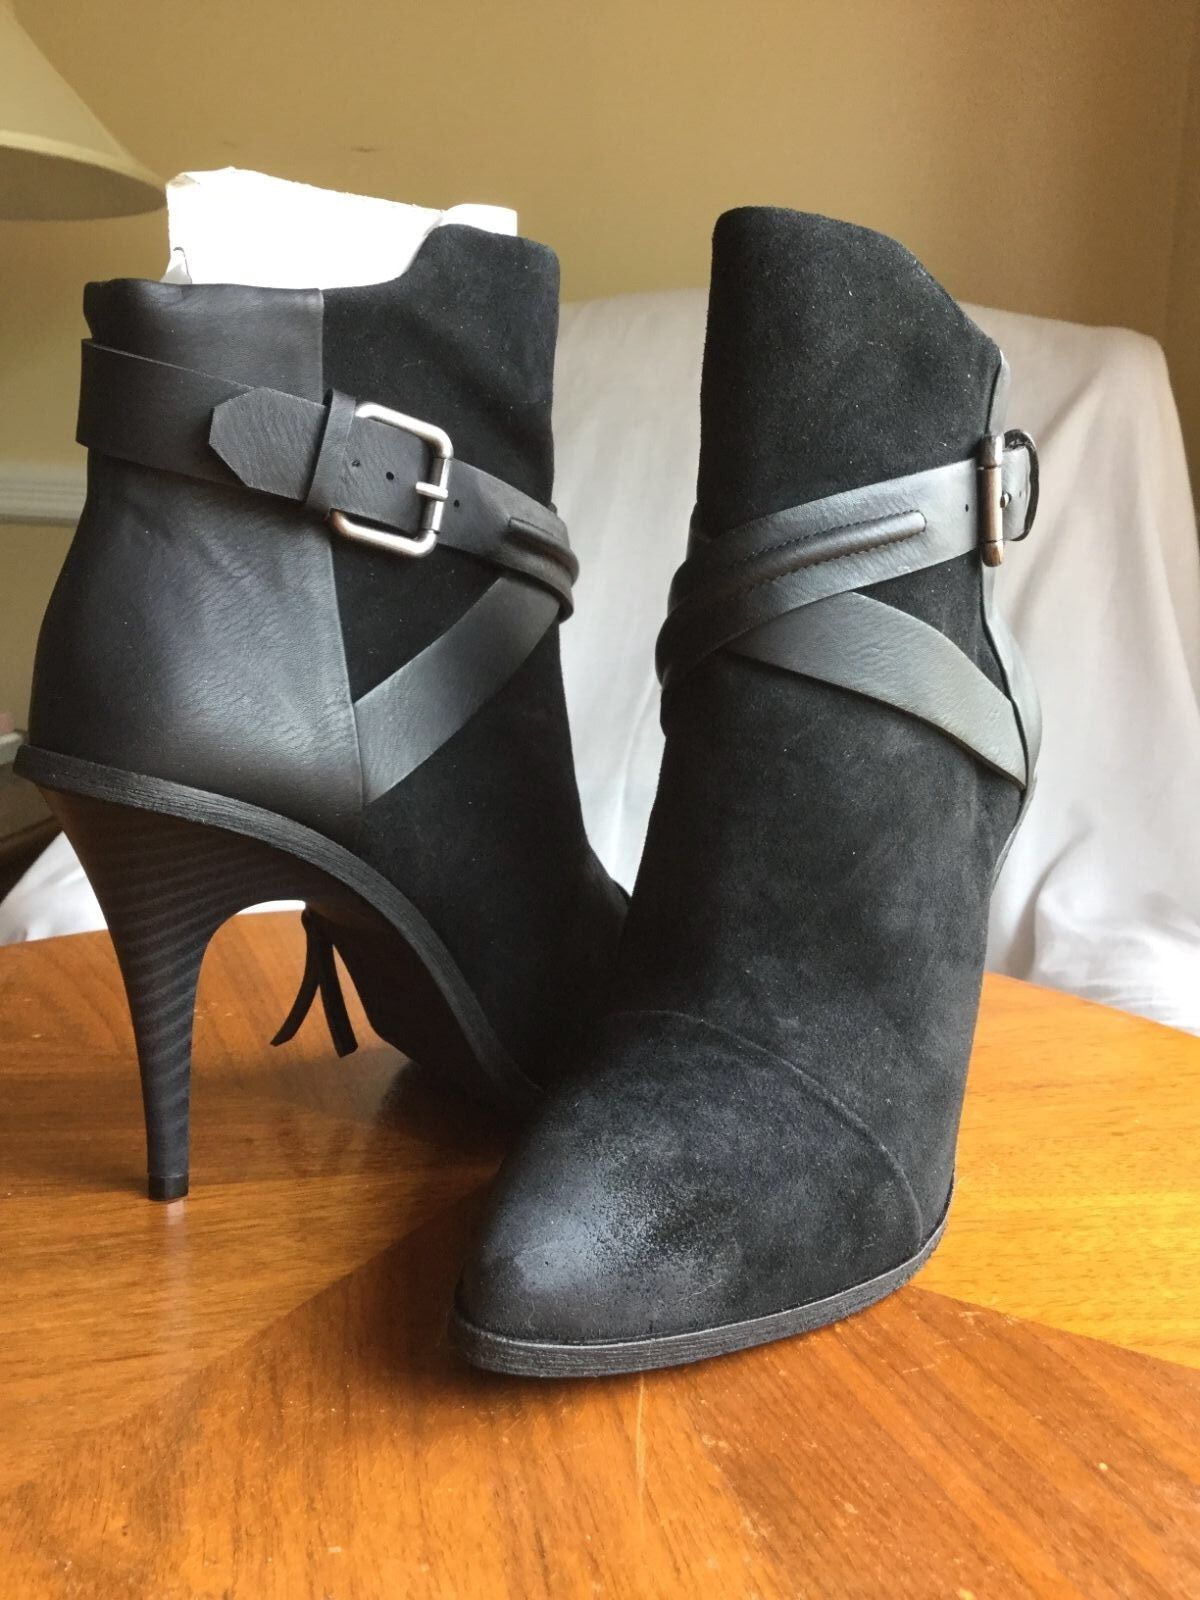 Joe's Jeans BURNISHED Toe STRAPPY BUCKLE Leather BIKER Bootie Black 7M